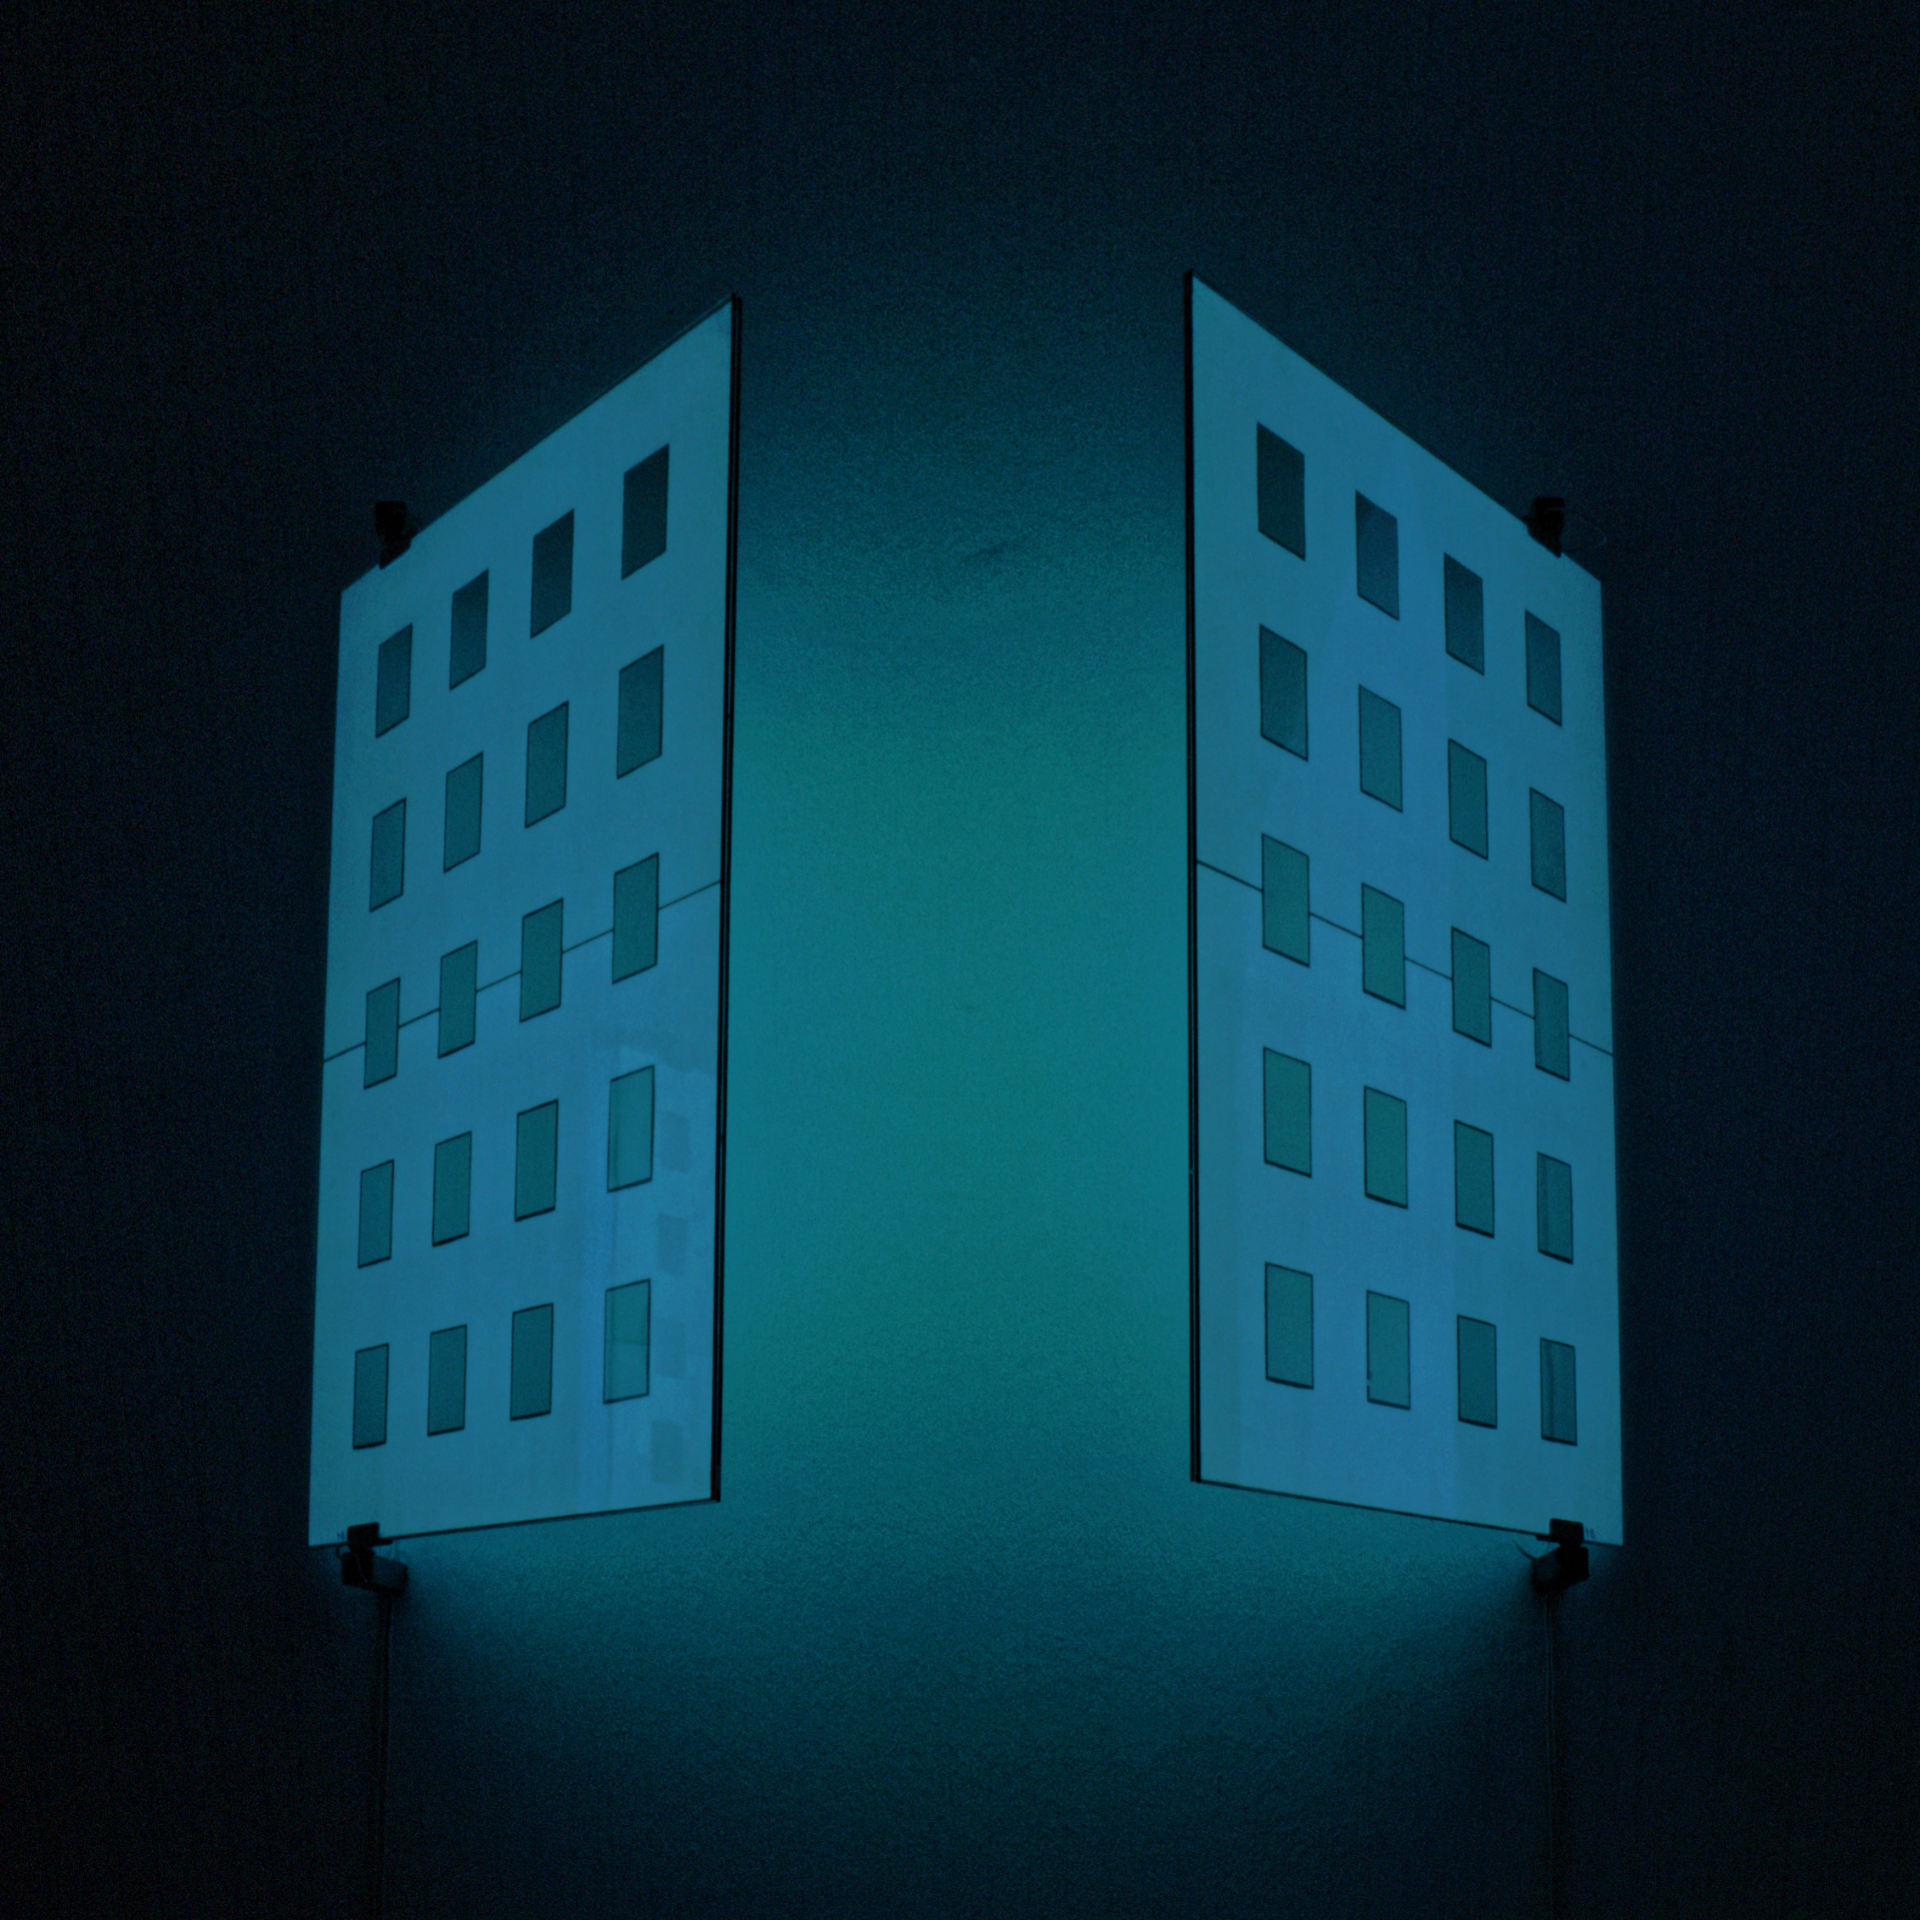 daniel_hausig_windows_farben_1996_light-art-installation